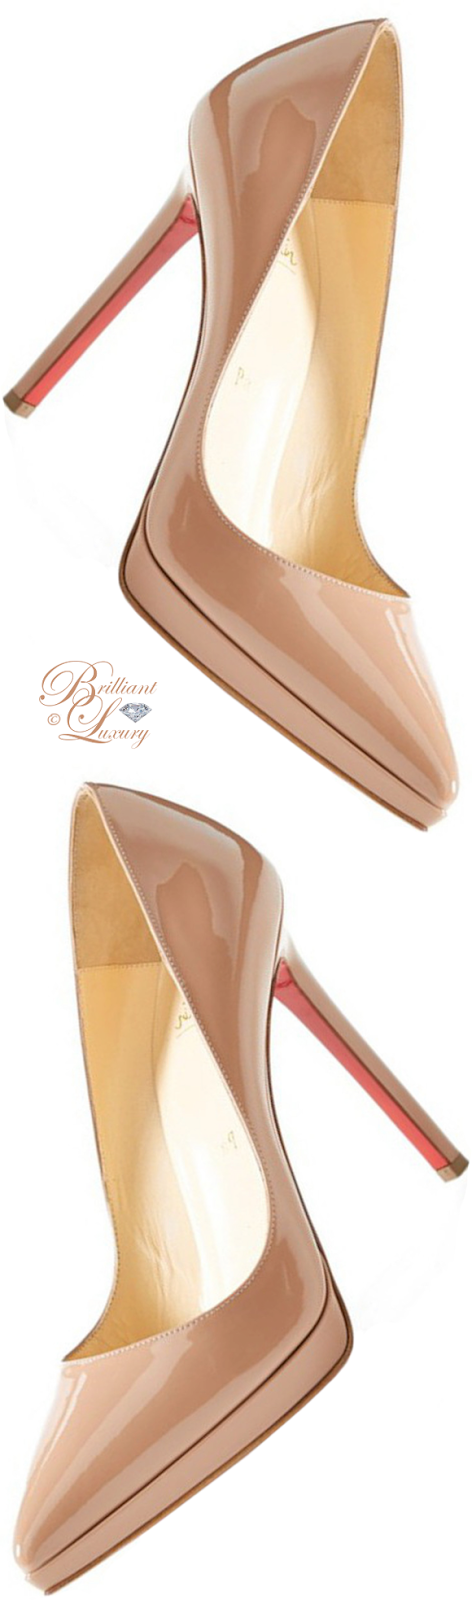 Brilliant Luxury ♦ Christian Louboutin Pigalle platform pump